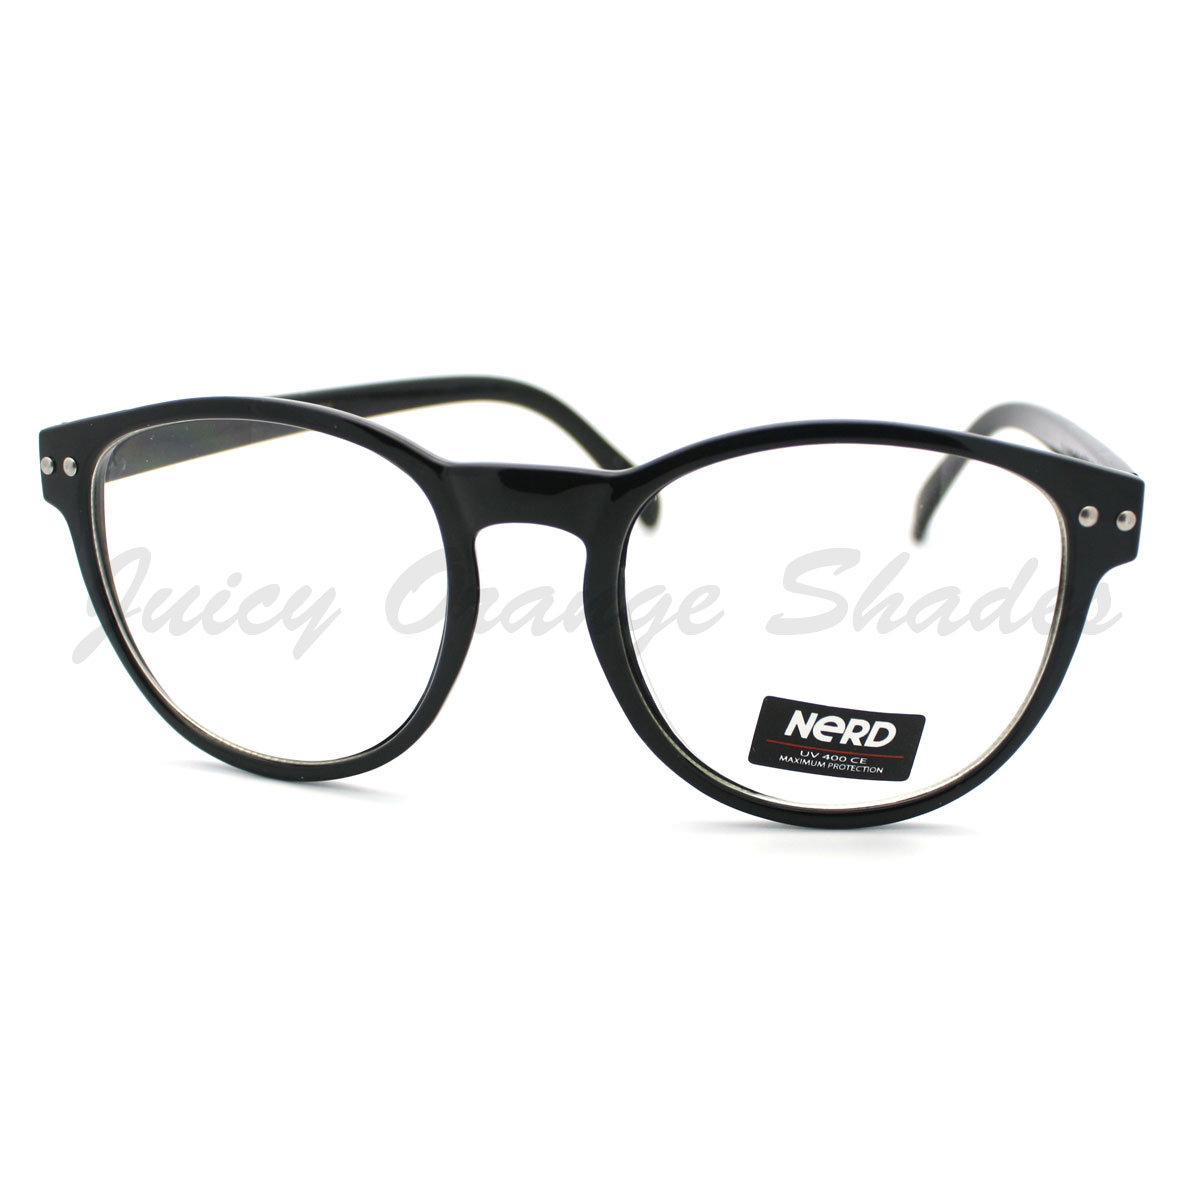 Round Keyhole Eyeglasses Frame Unisex Clear Lens Nerd Glasses (3 Colors)